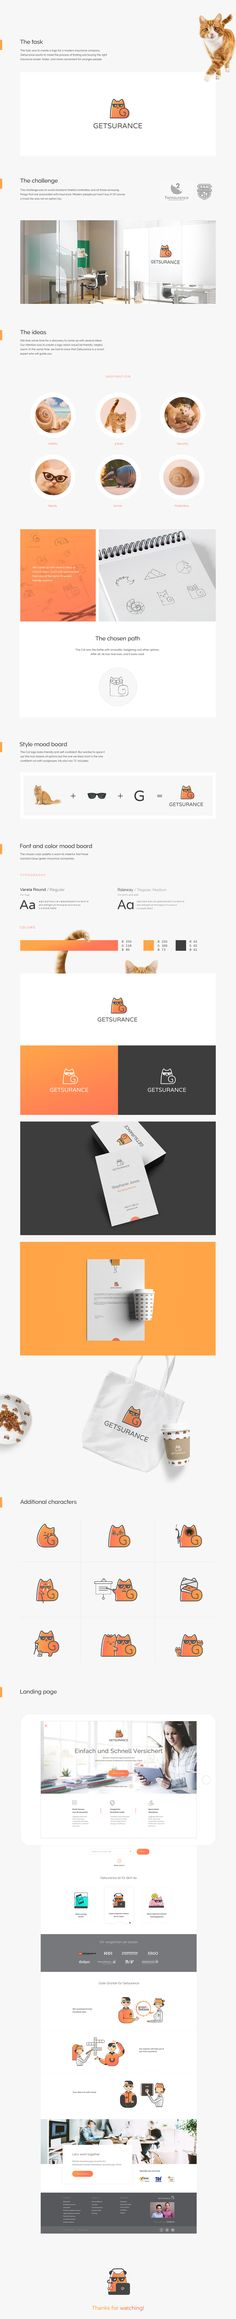 We created a logo for a modern insurance company.Getsurance wants to make the process of finding and buying the right insurance easier, faster, and more convenient for younger people.